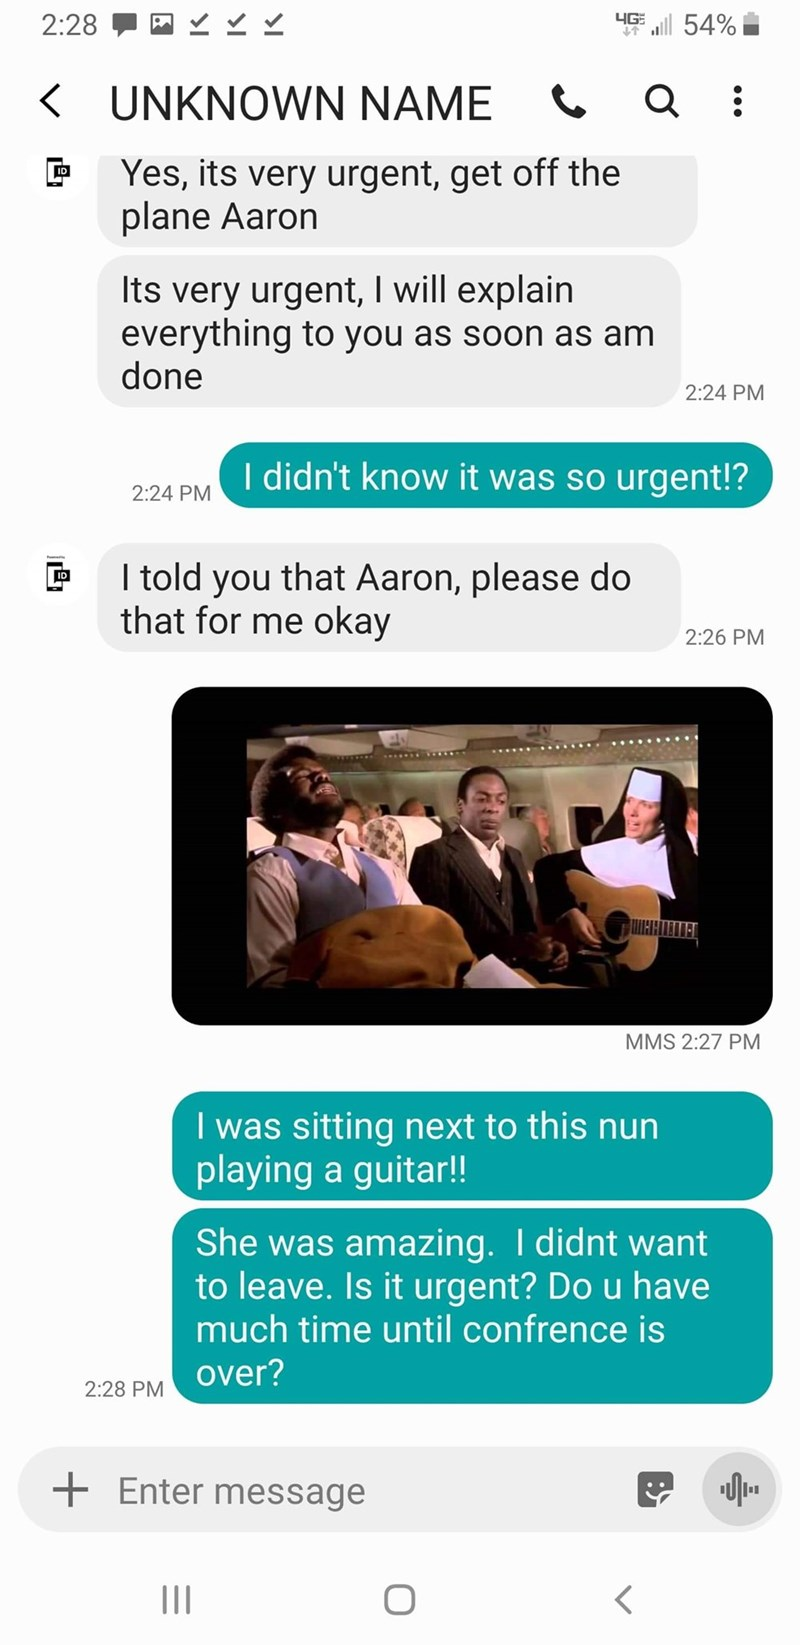 Text - 4G 54% 2:28 KUNKNOWN NAME Q Yes, its very urgent, get off the plane Aaron Its very urgent, I will explain everything to you as soon as am done 2:24 PM I didn't know it was so urgent!? 2:24 PM I told you that Aaron, please do that for me okay ID 2:26 PM ШННТЕТ ПАТ MMS 2:27 PM I was sitting next to this nun playing a guitar!! She was amazing. I didnt want to leave. Is it urgent? Do u have much time until confrence is 2:28 PM OVer? Enter message II